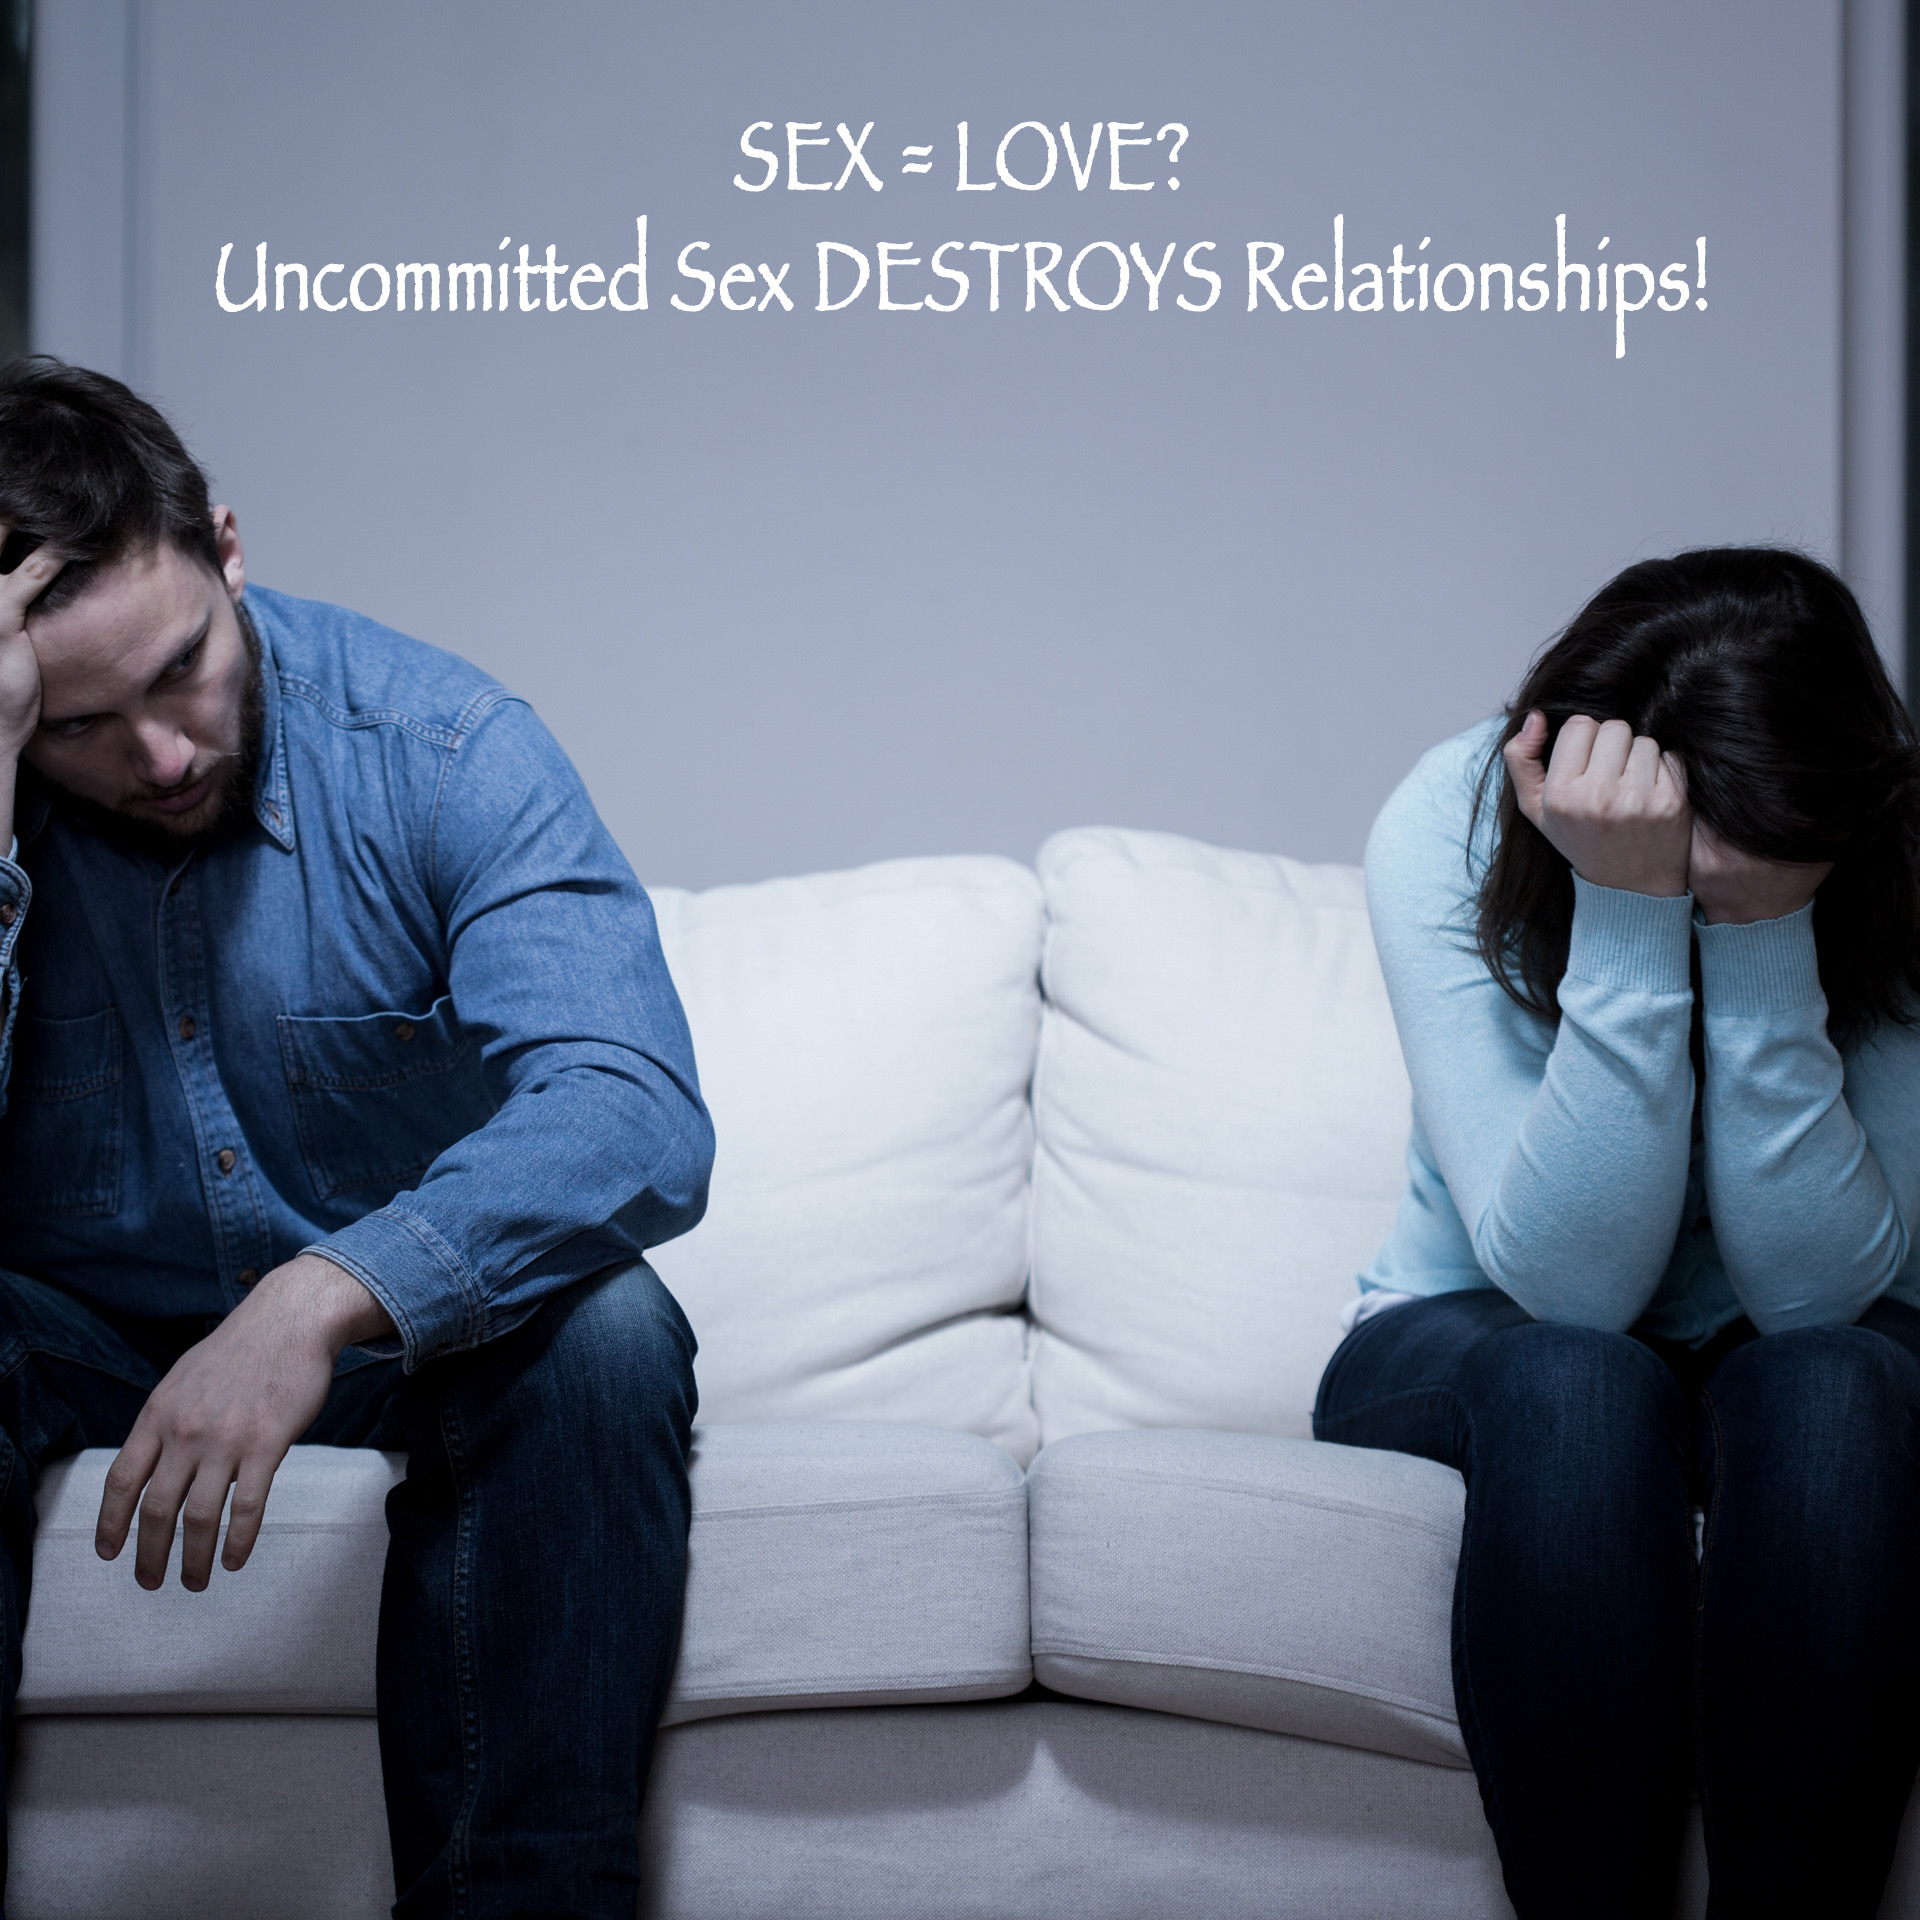 SEX = LOVE? Uncommitted Sex DESTROYS Relationships!